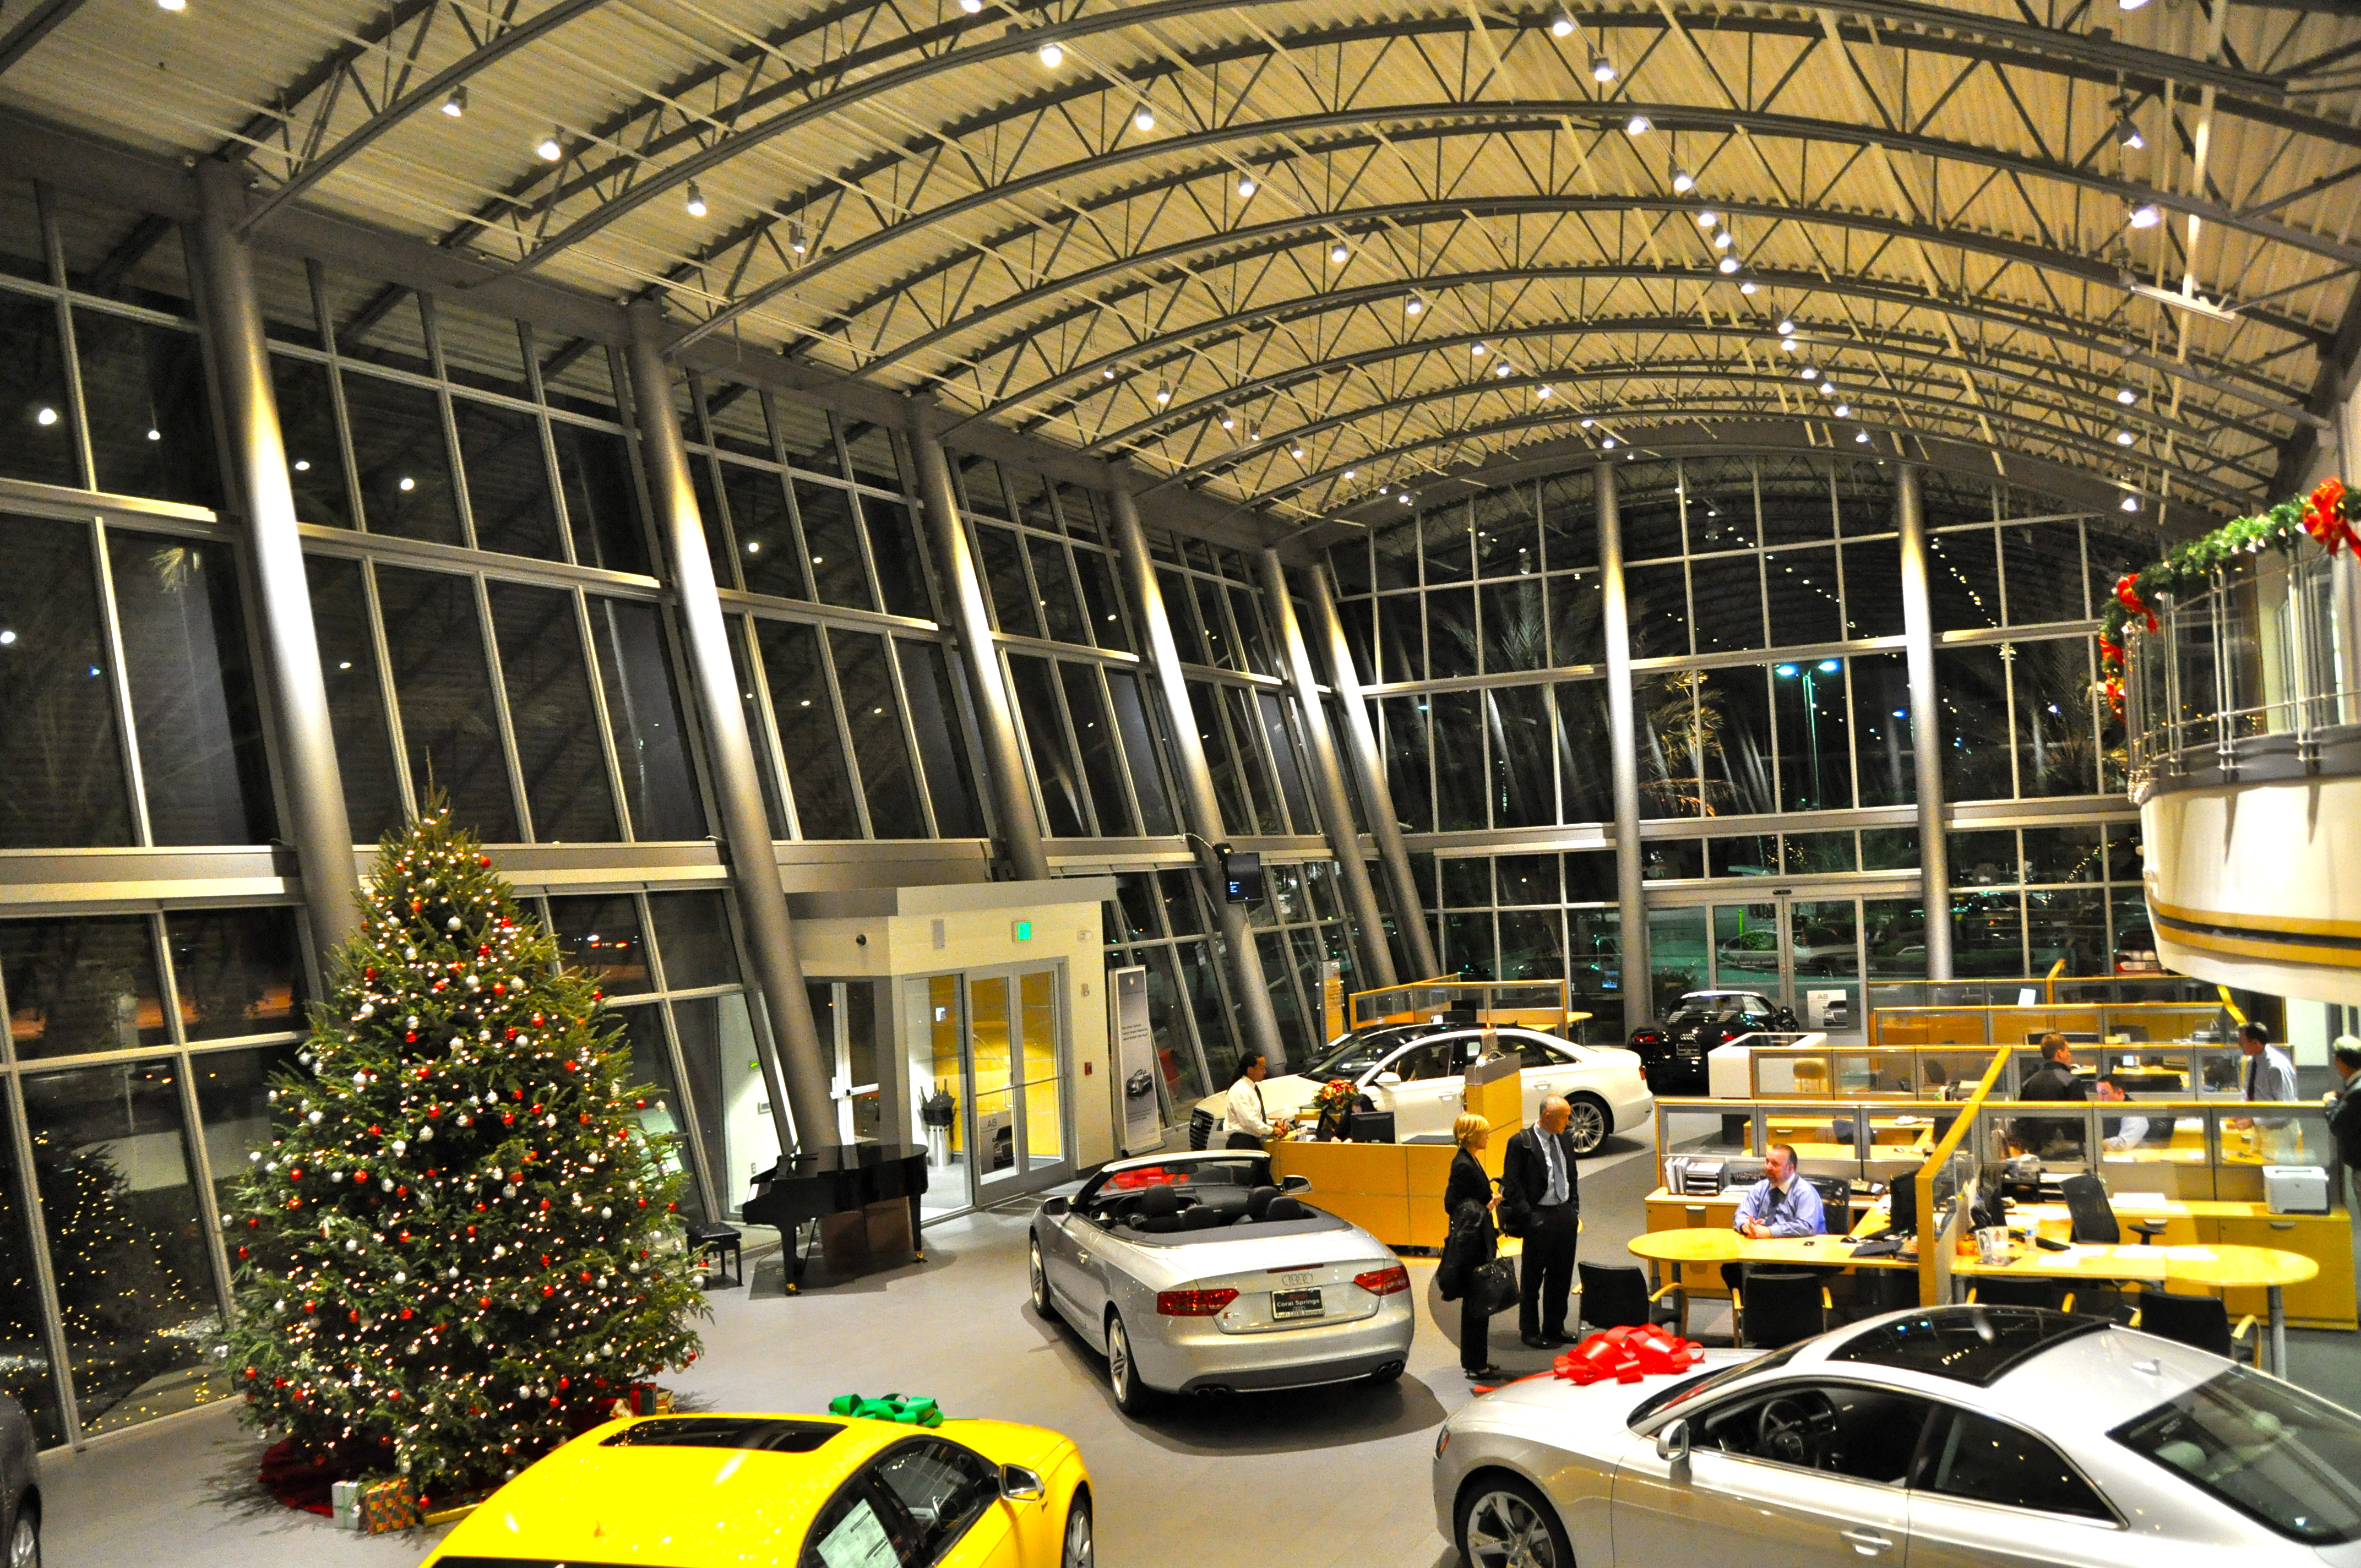 led source helps car dealership save money energy with lighting makeover